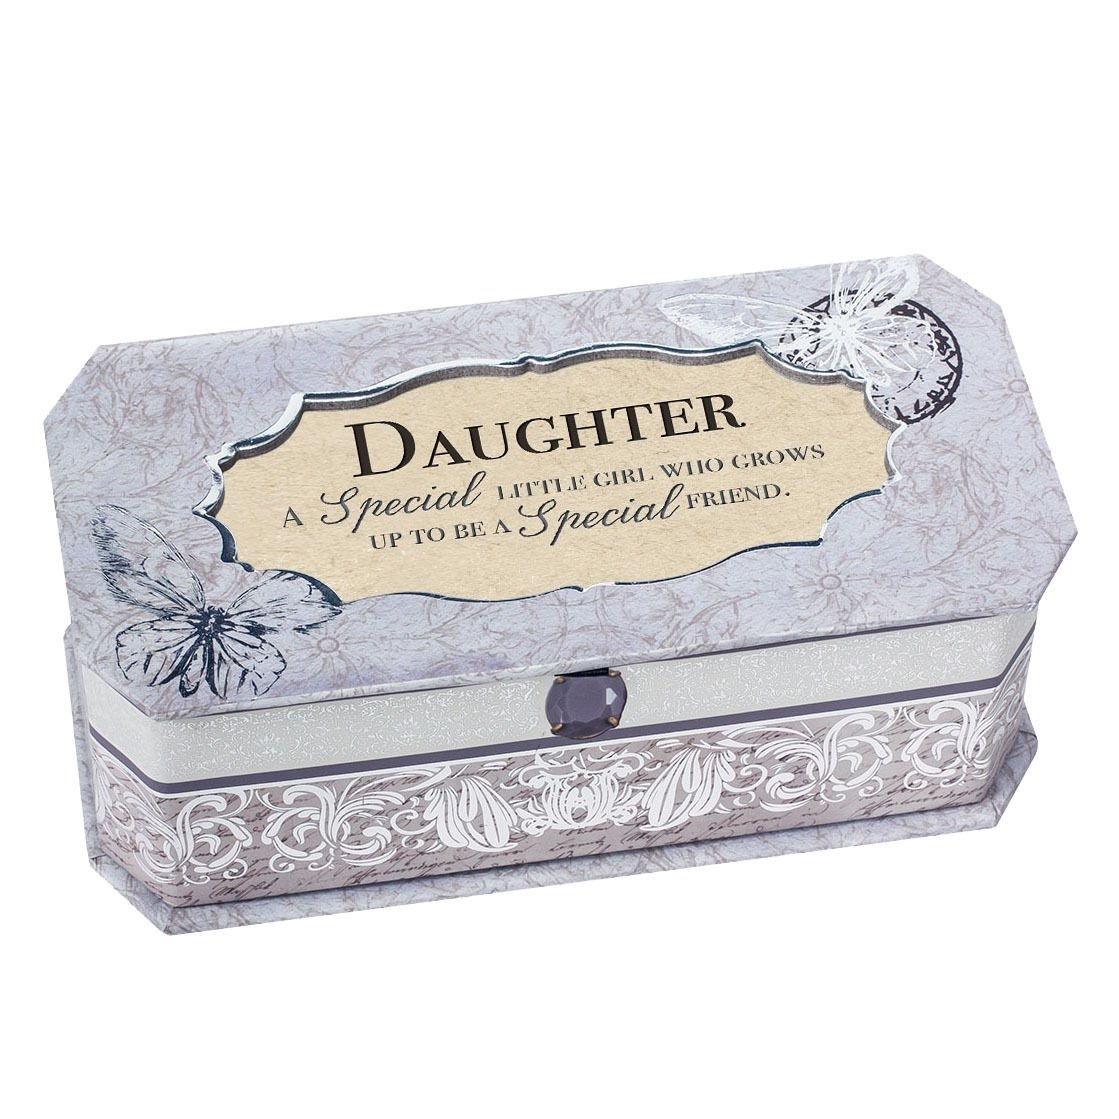 garden musical jewellery box gift for daughter- special gifts for